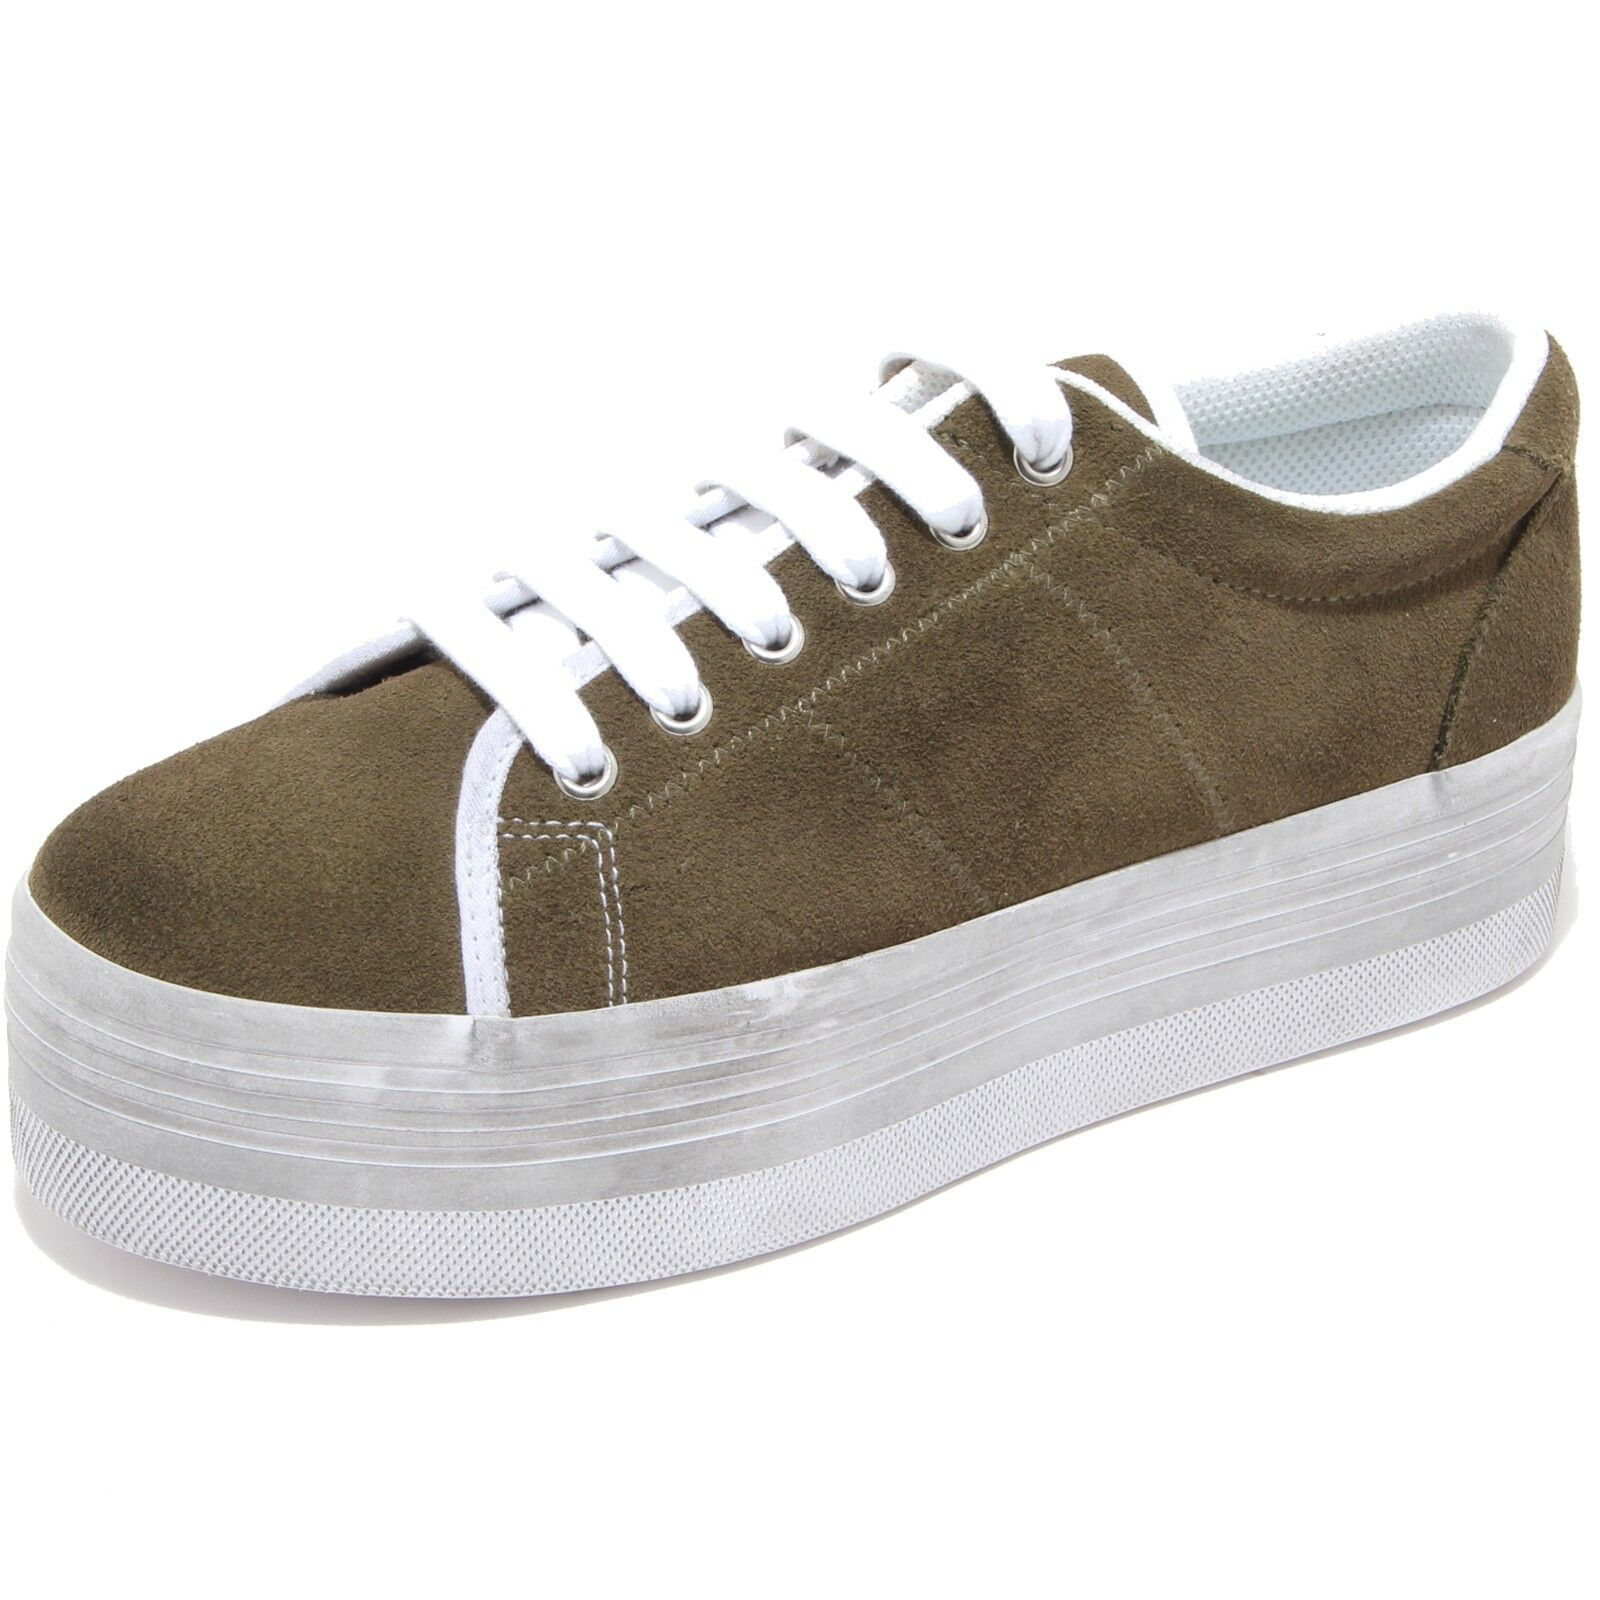 88819 sneaker JEFFREY CAMPBELL EPLAY ZOMG SUEDE WASH scarpa donna shoes Donna